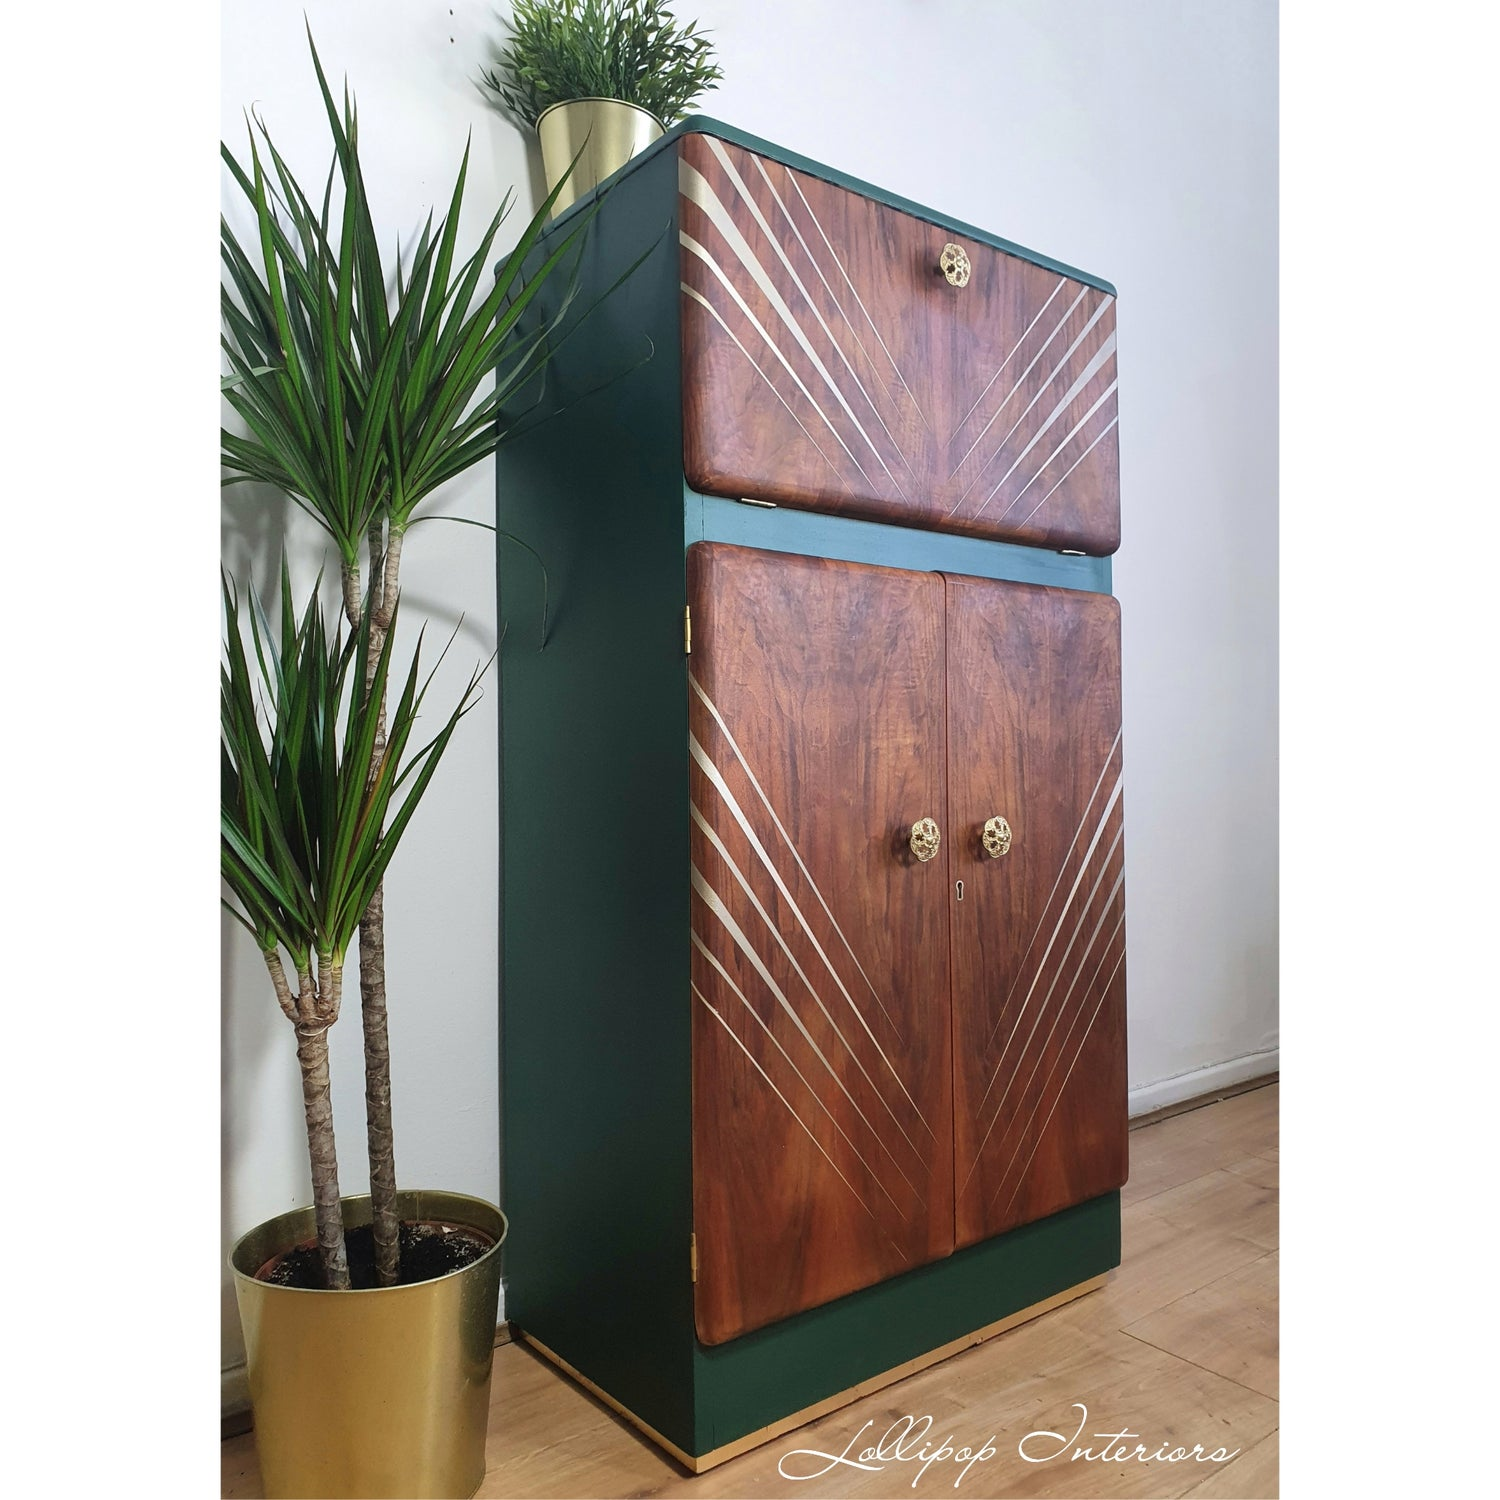 Image of Vintage cocktail cabinet in green